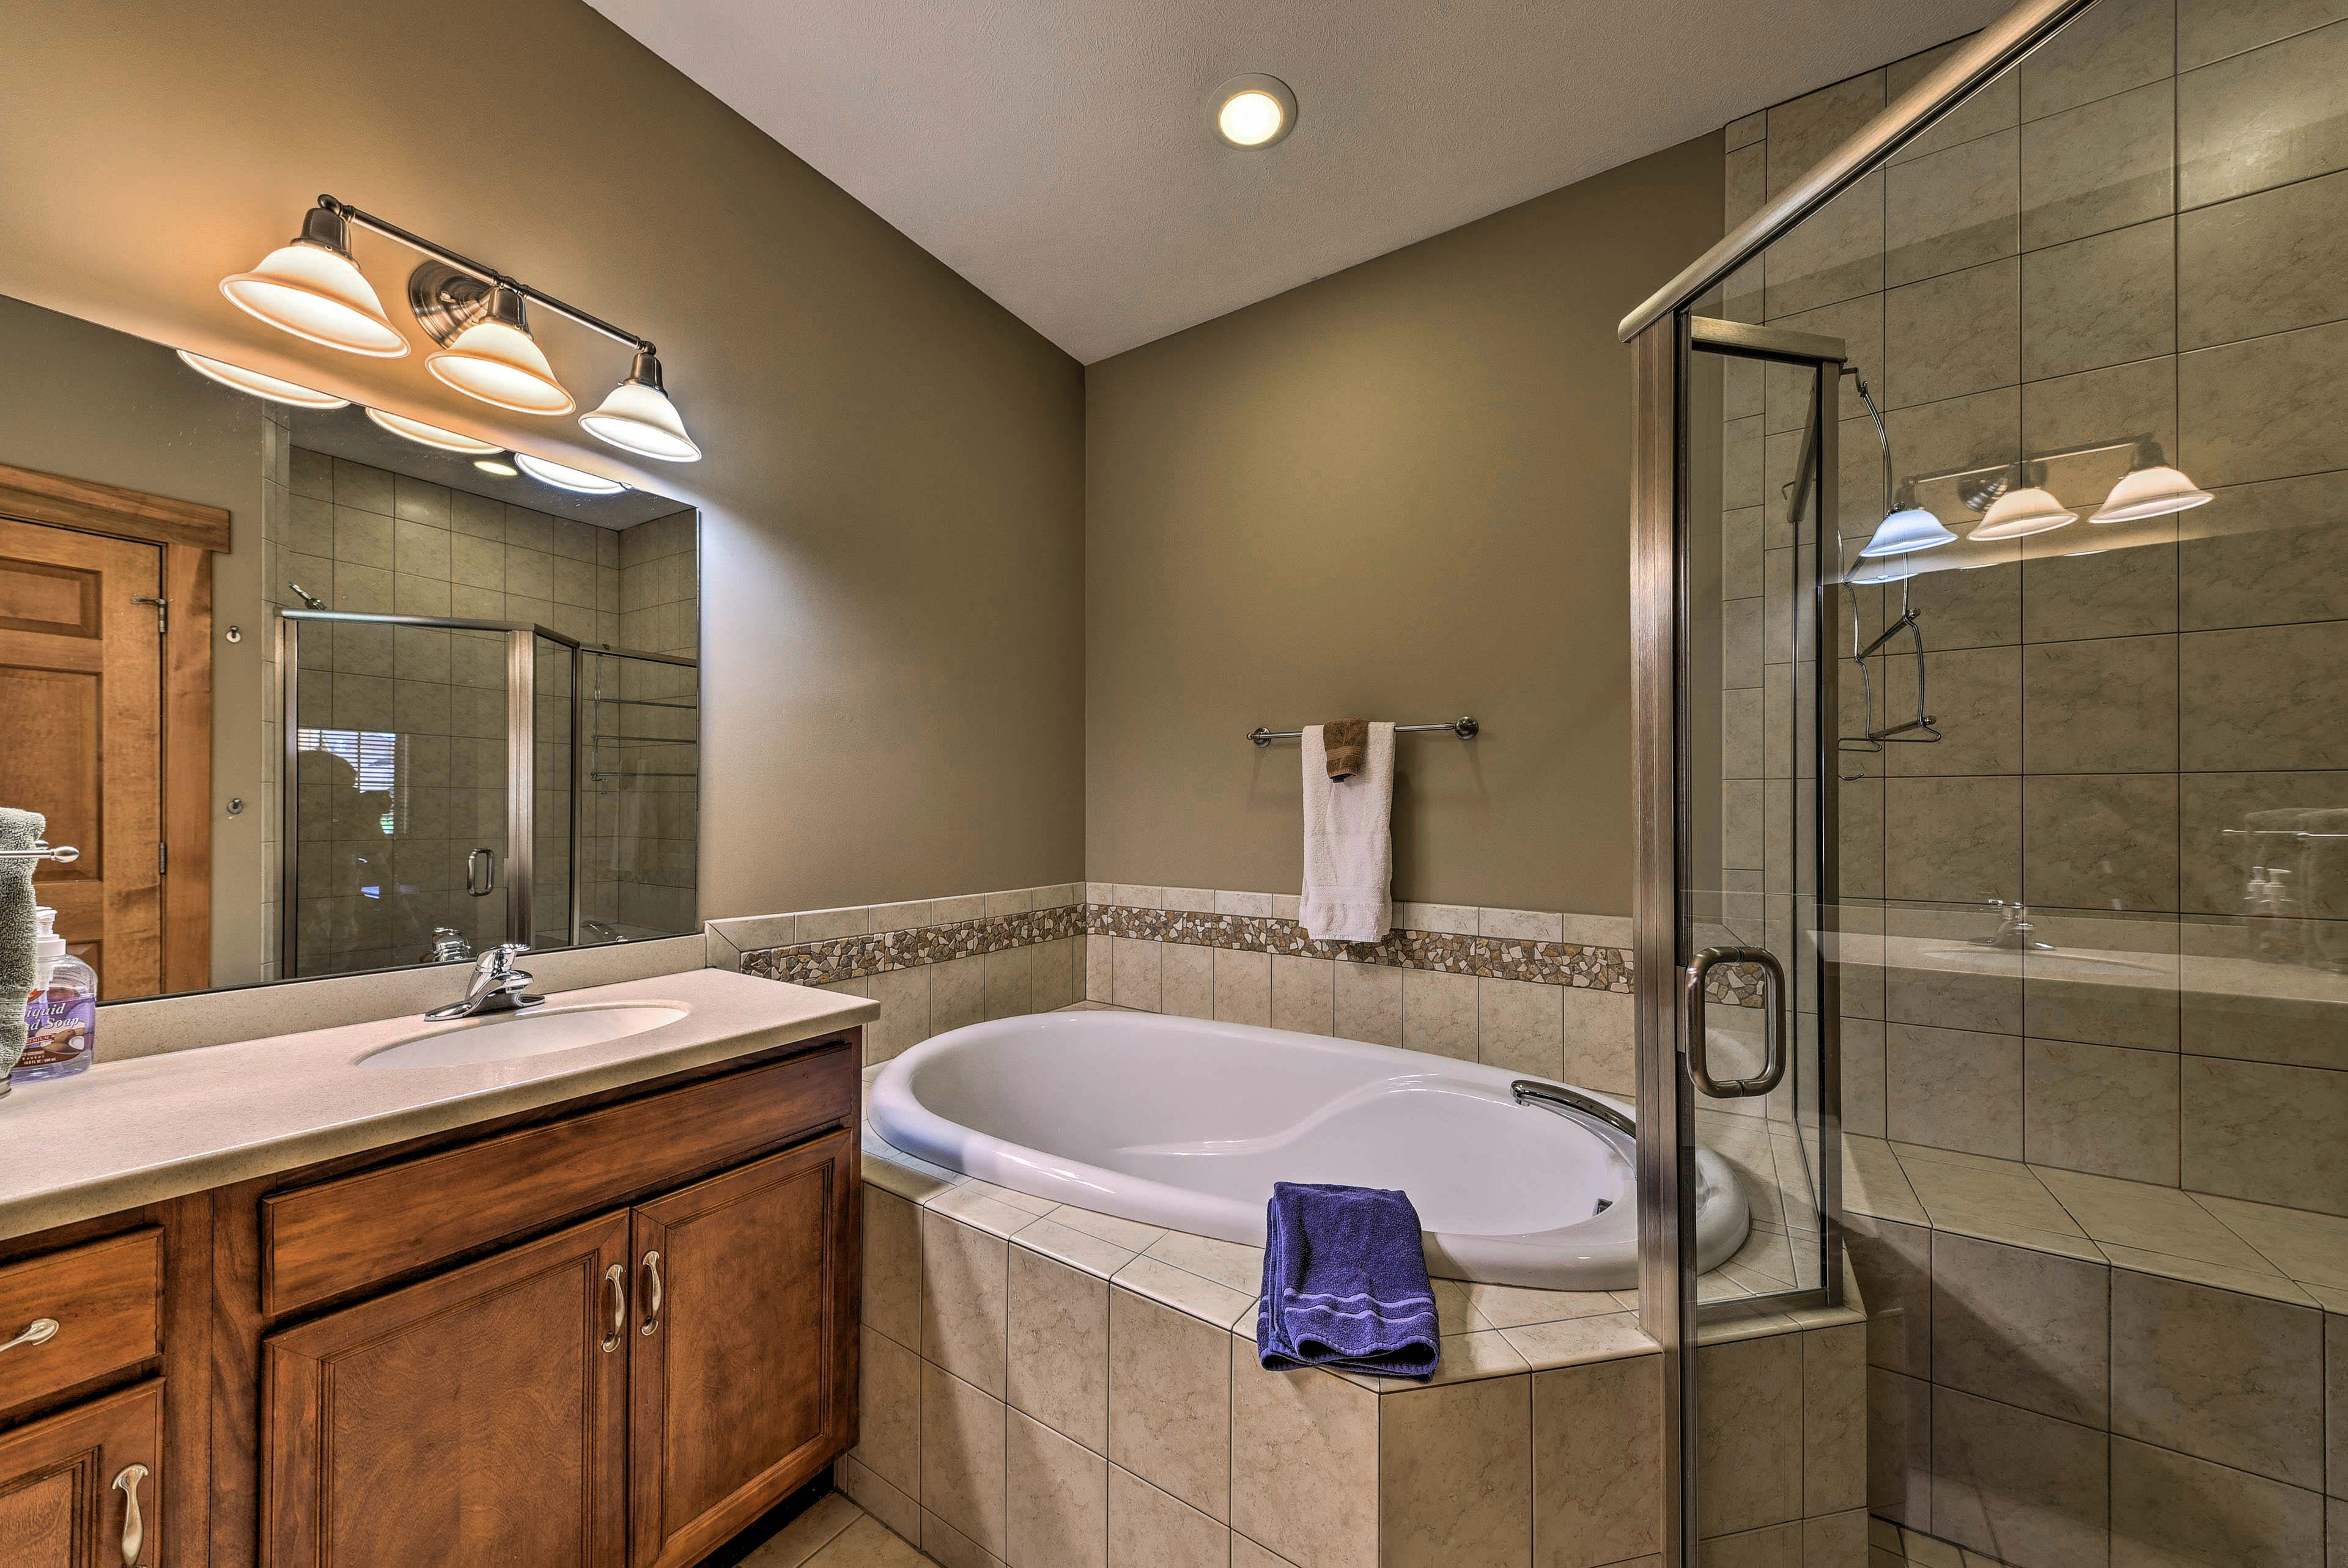 Pour a glass of wine and relax in the jacuzzi tub.